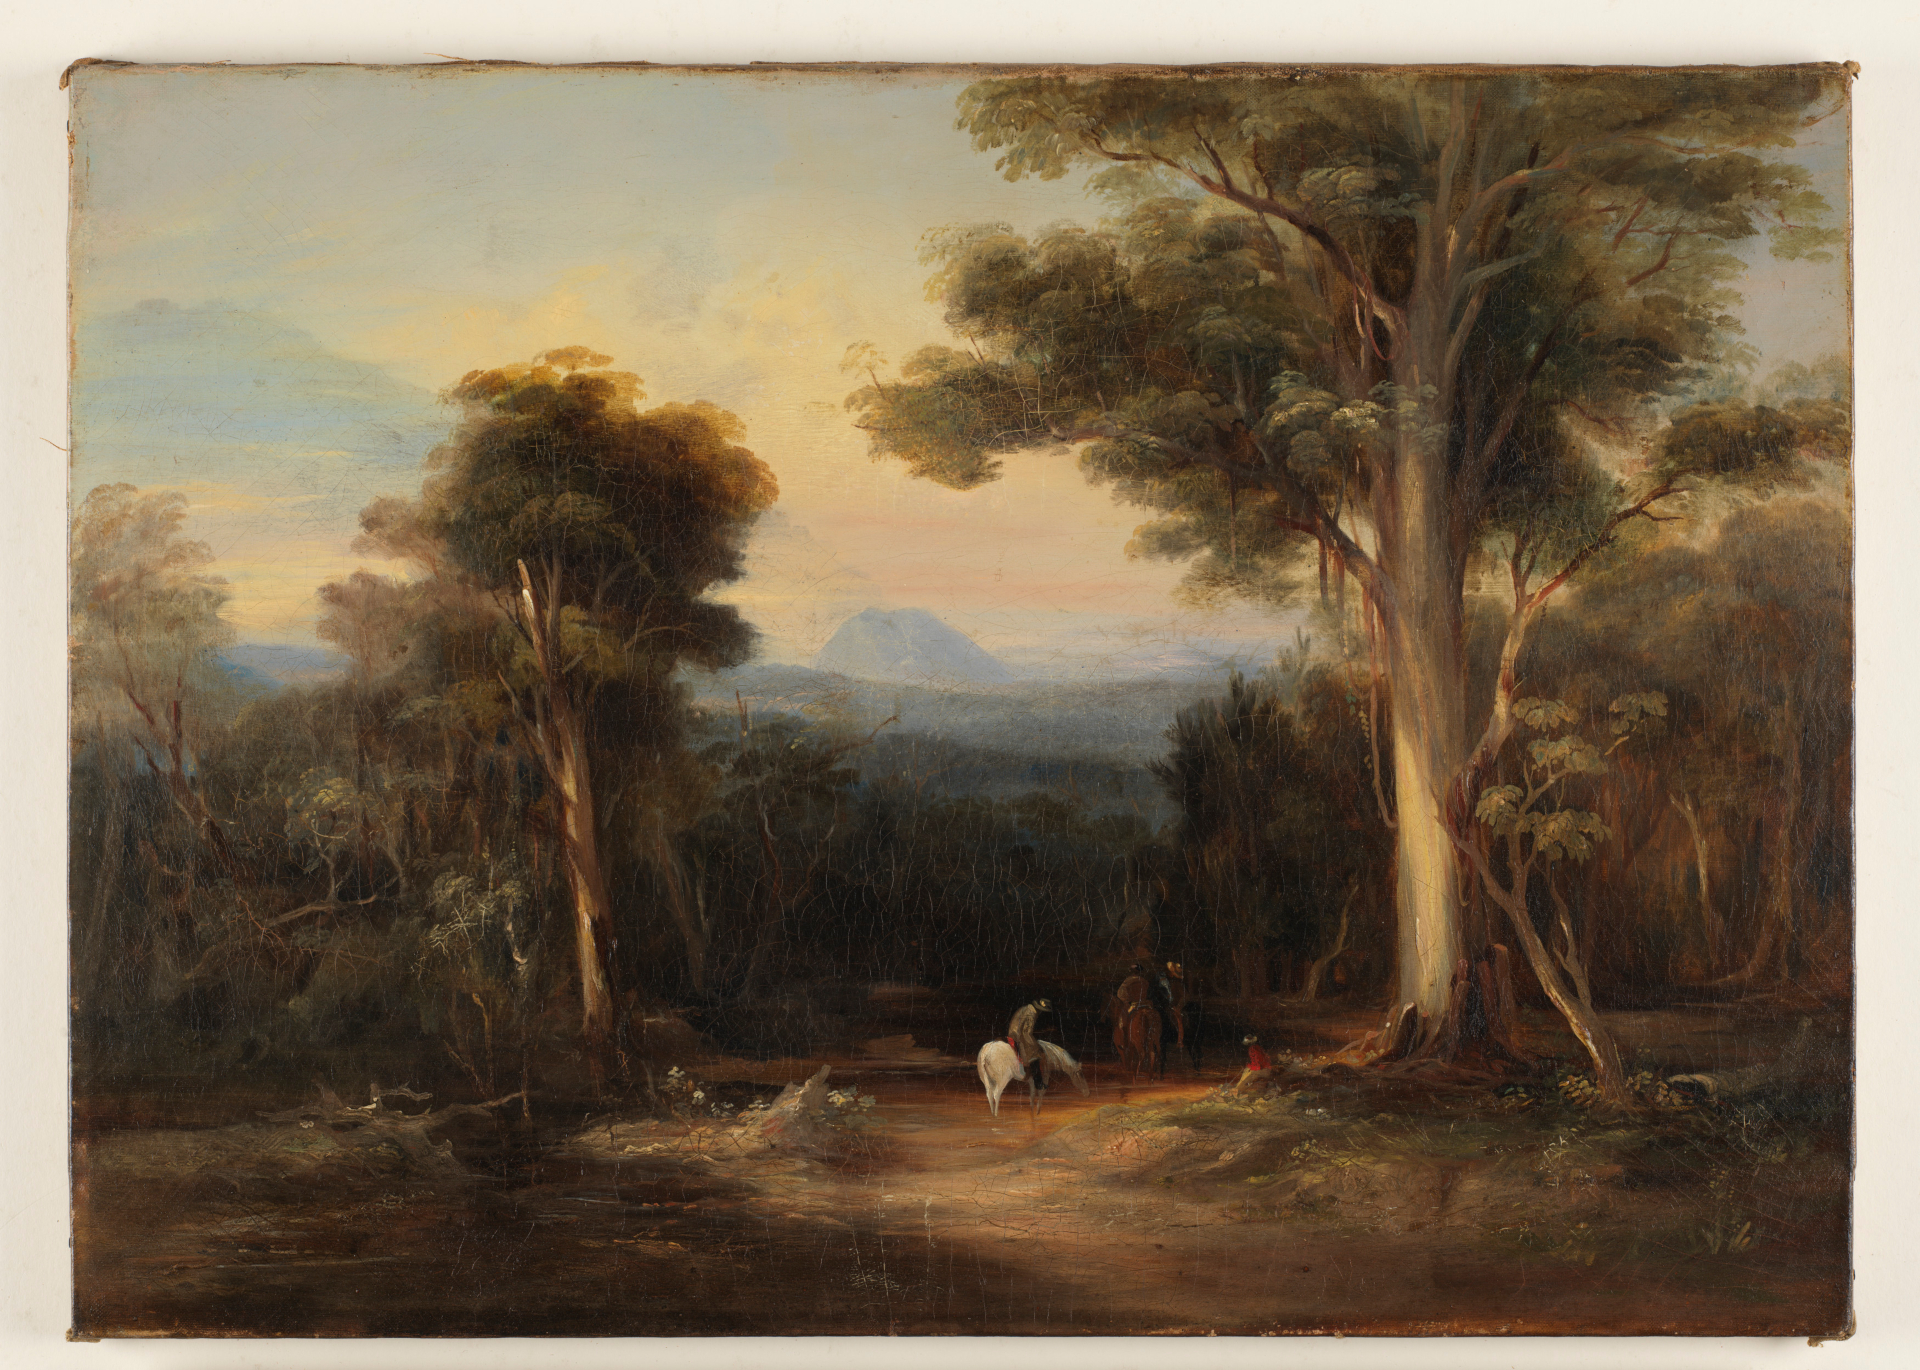 [Mount King George from the Bathurst Road] 1848 / Conrad Martens